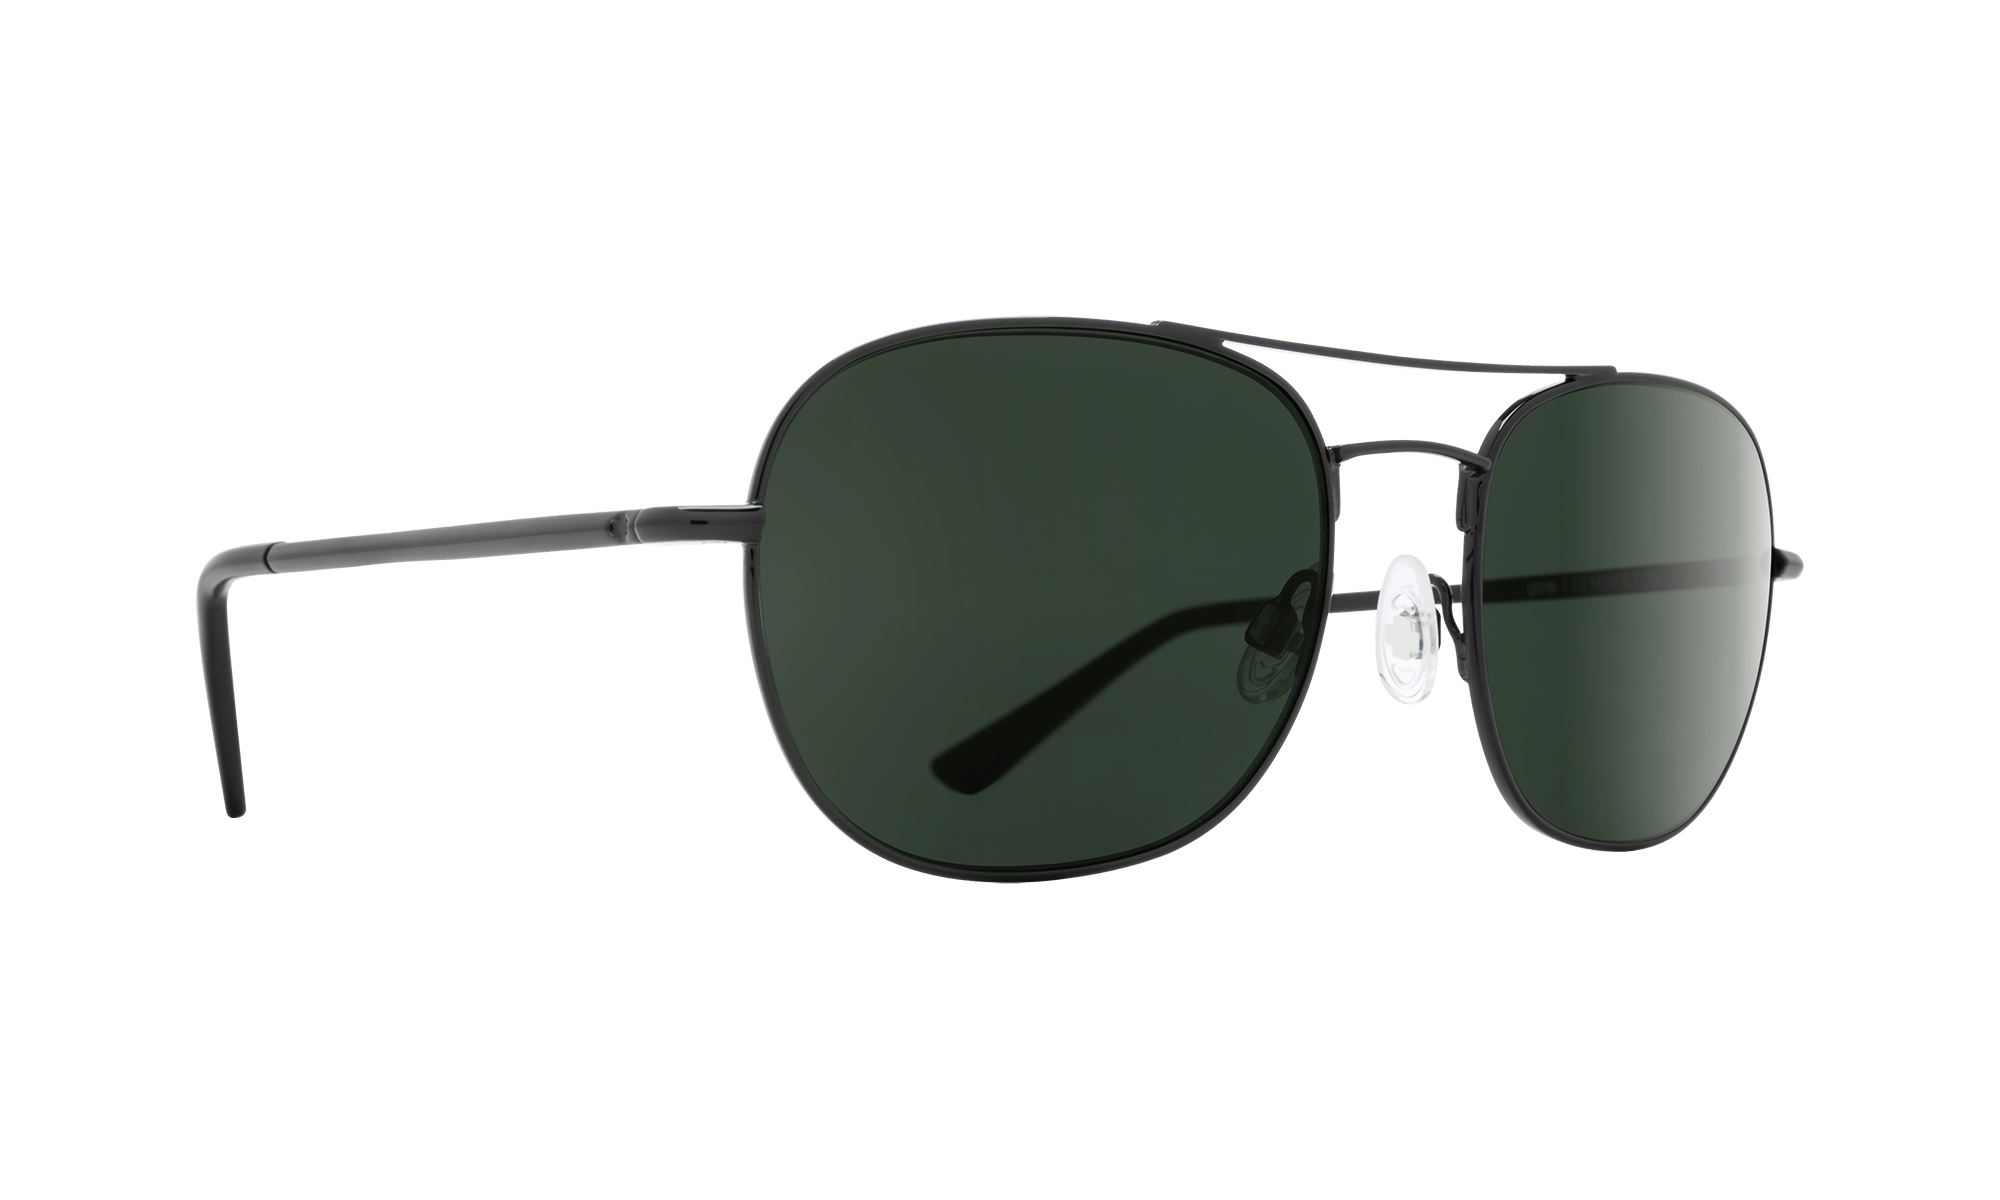 SPY Pemberton  Sunglasses  HD Plus Gray Green Polar  53-18-140